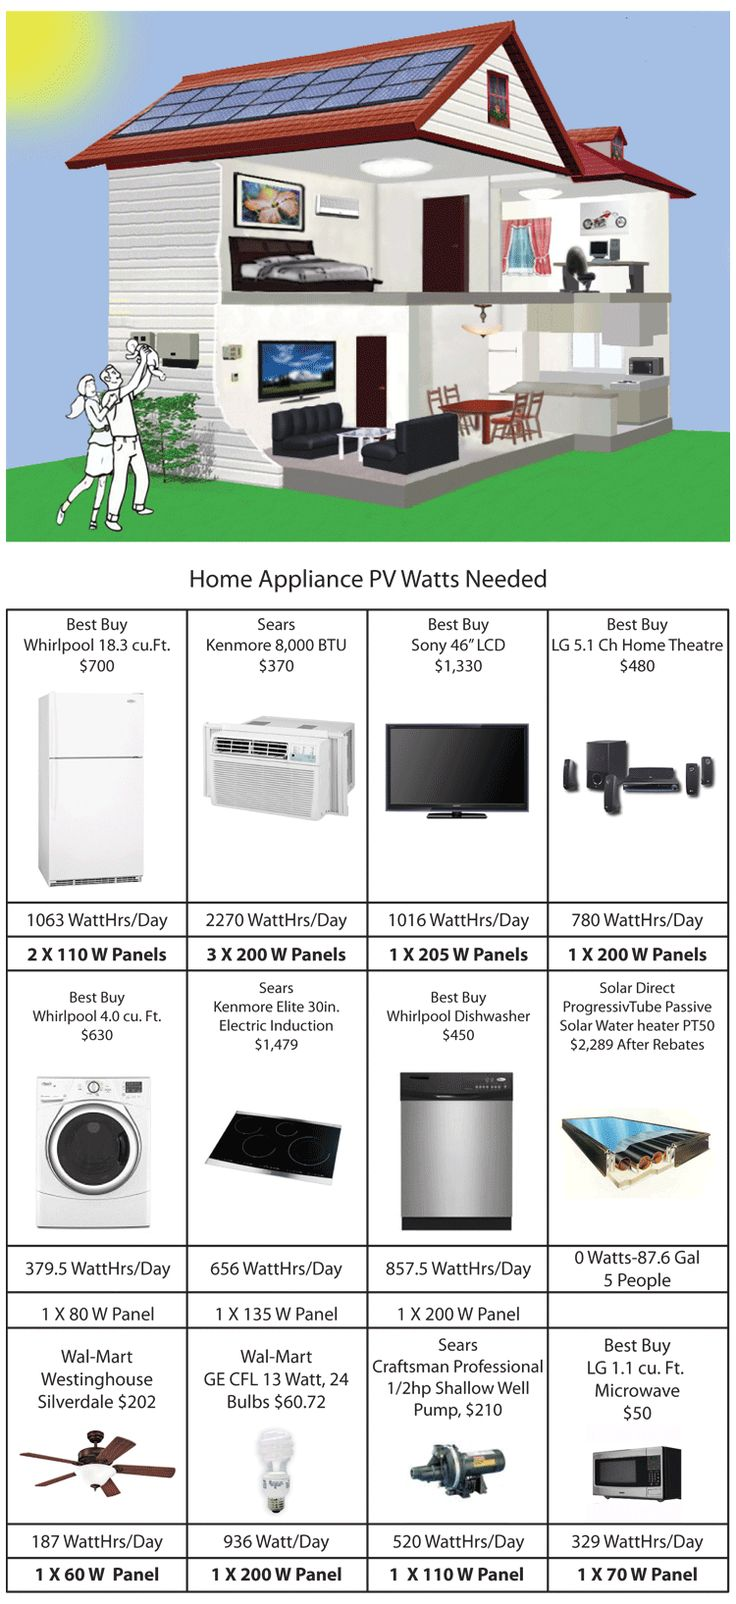 The Watts needed for every appliance in your home to get Solar Power to work for you!